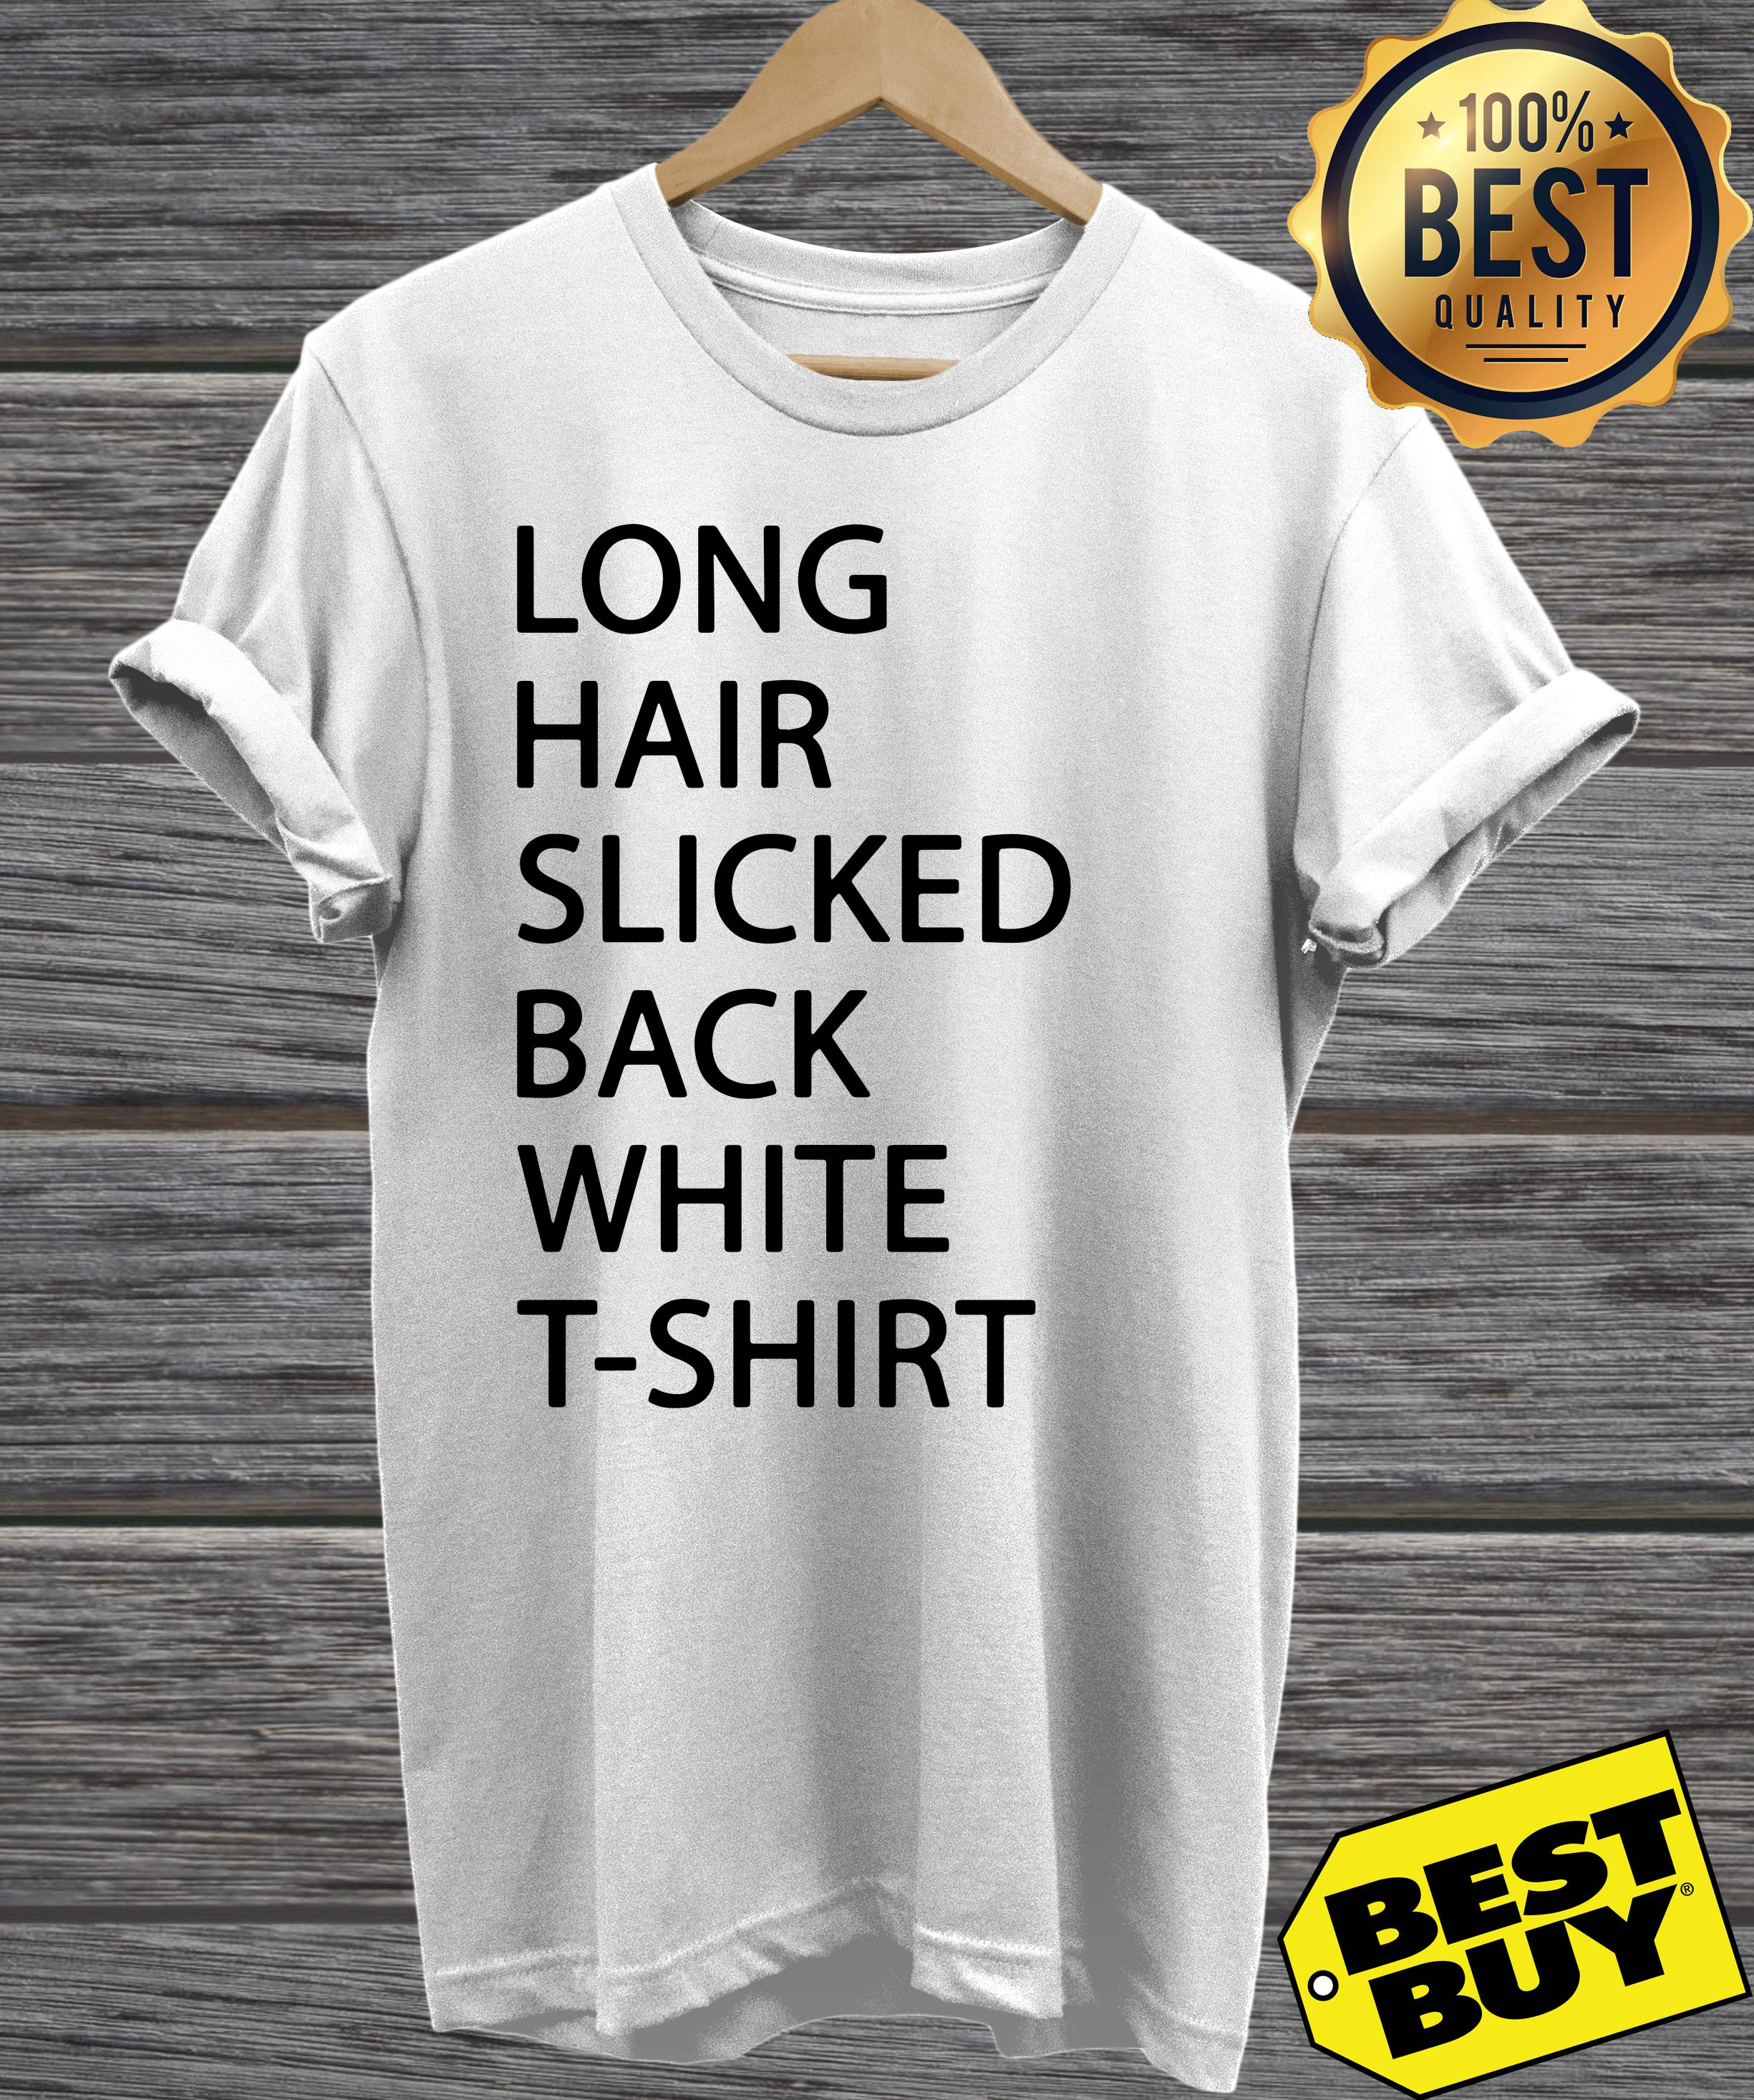 Long hair slicked back white t-shirt v-neck